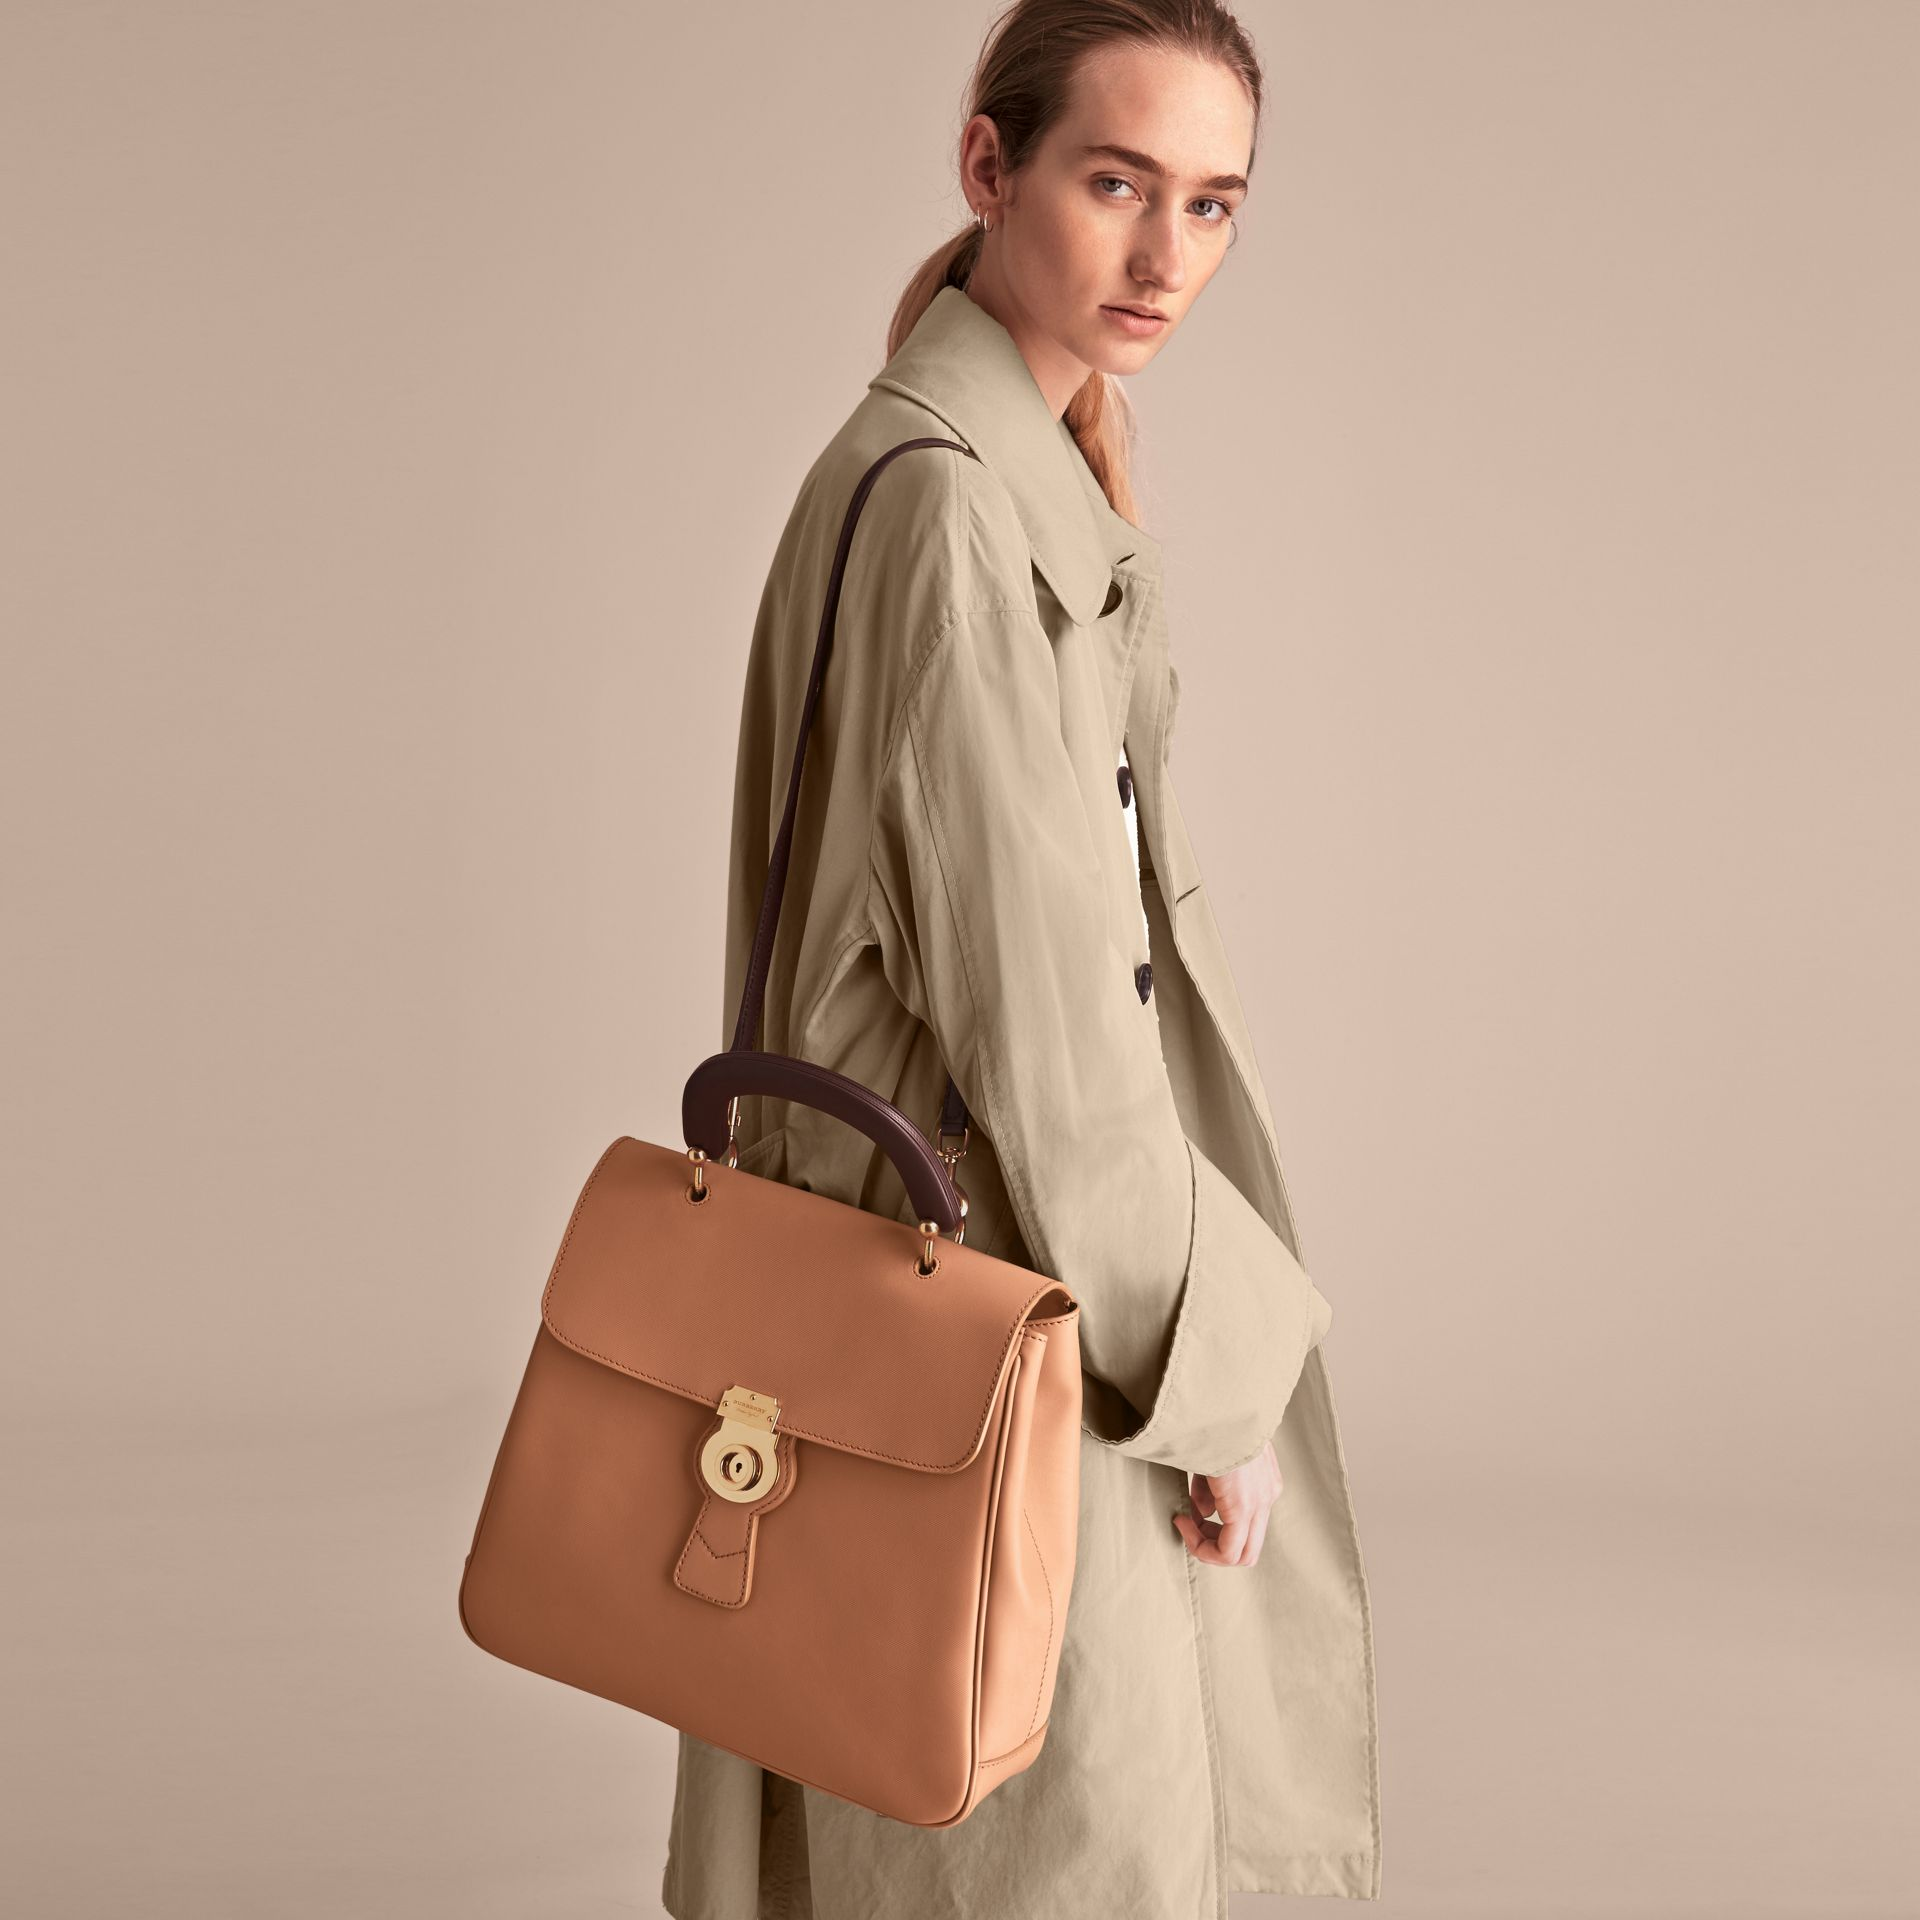 The Large DK88 Top Handle Bag in Pale Clementine - Women | Burberry Hong Kong - gallery image 8